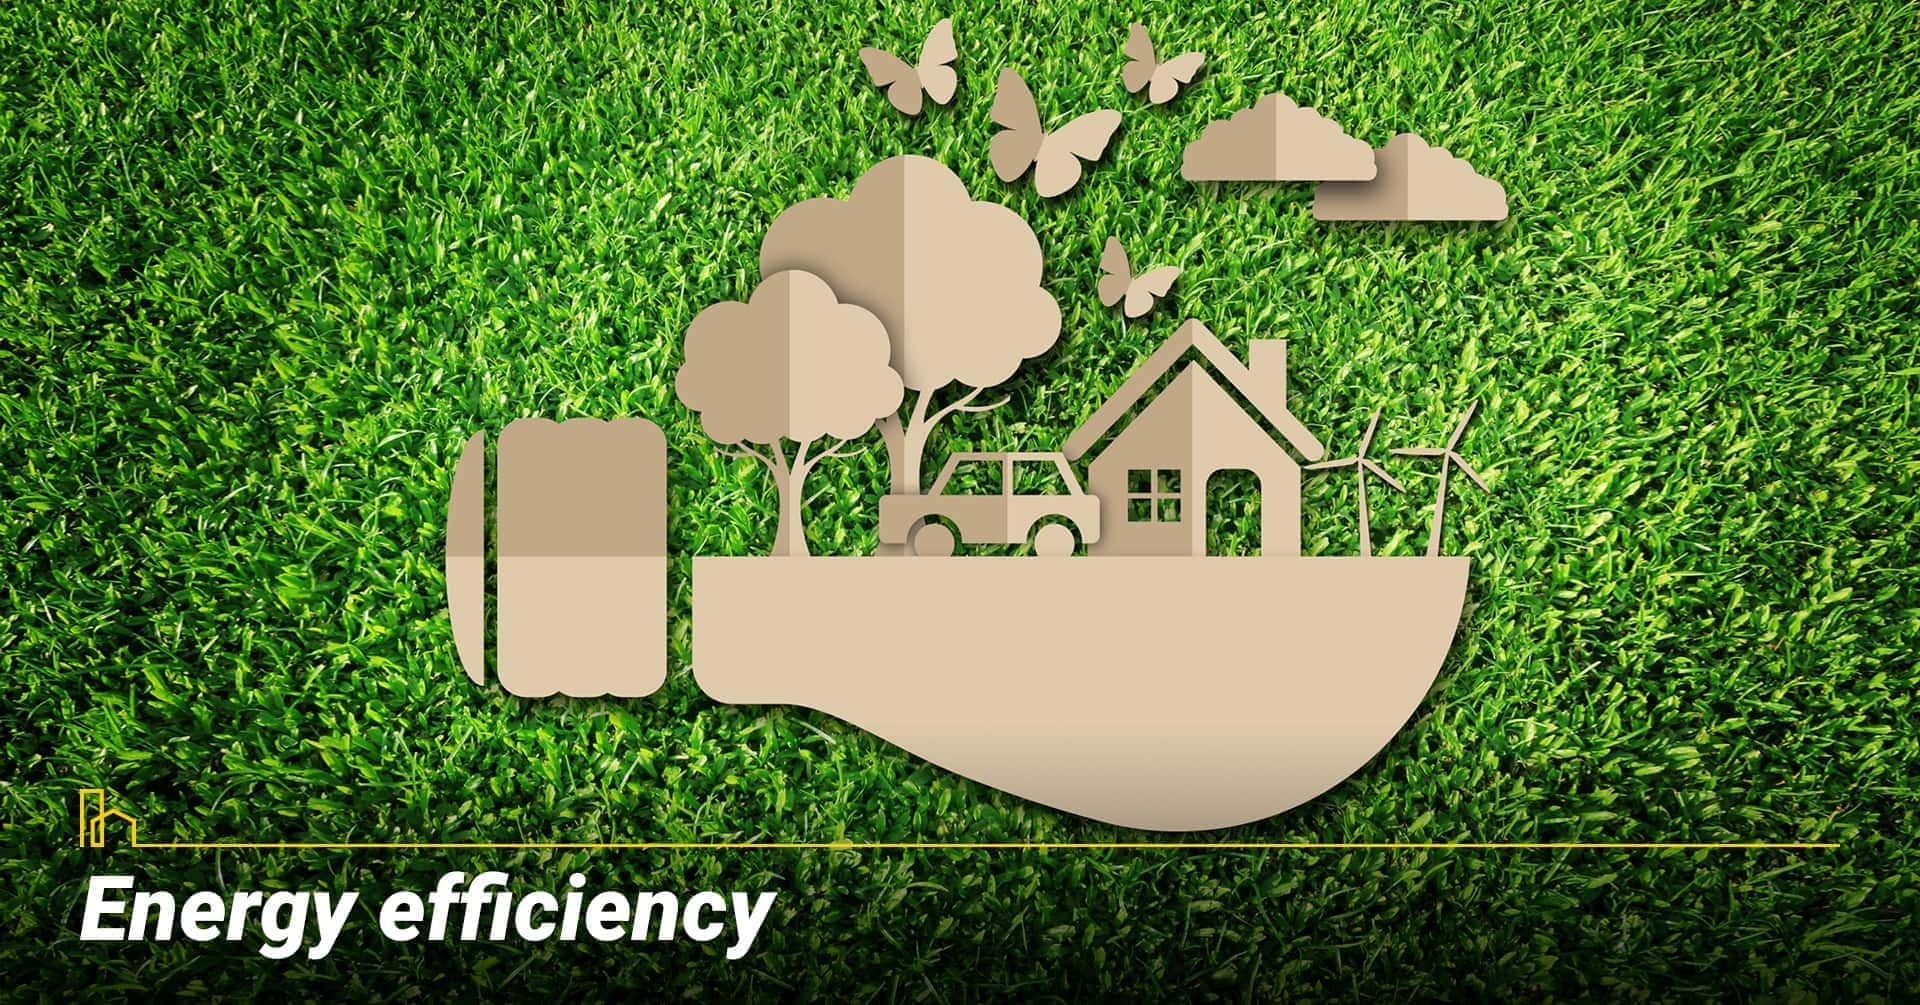 Energy efficiency, energy consumption of the property